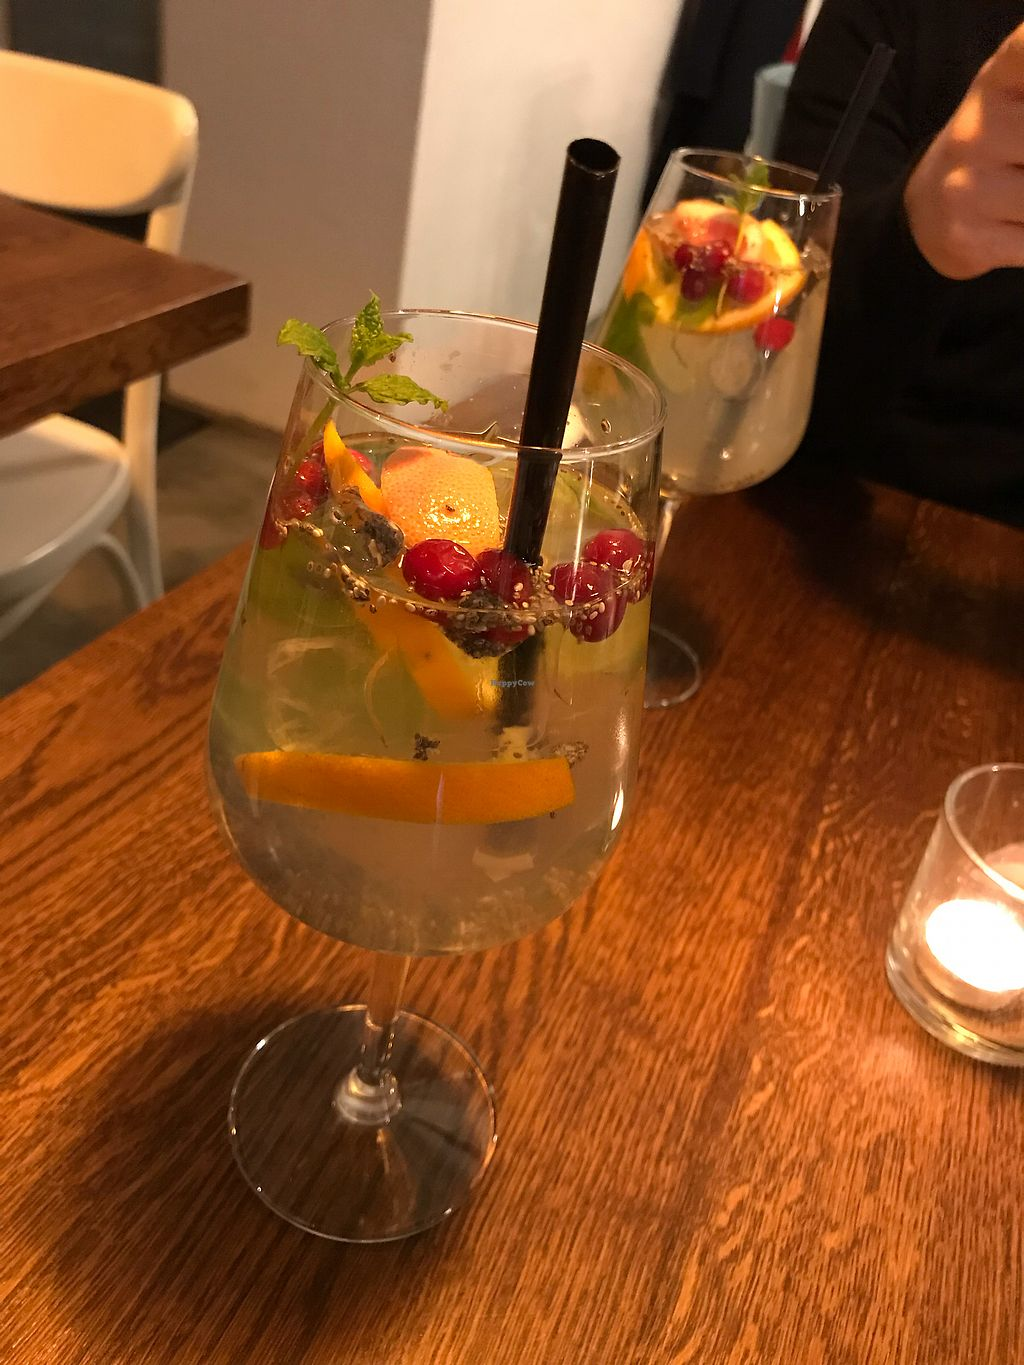 "Photo of Leonardo Verde  by <a href=""/members/profile/ellengdx"">ellengdx</a> <br/>Large selection of different types of drinks and cocktails. This was a lovely chia fresca <br/> January 8, 2018  - <a href='/contact/abuse/image/93573/344445'>Report</a>"